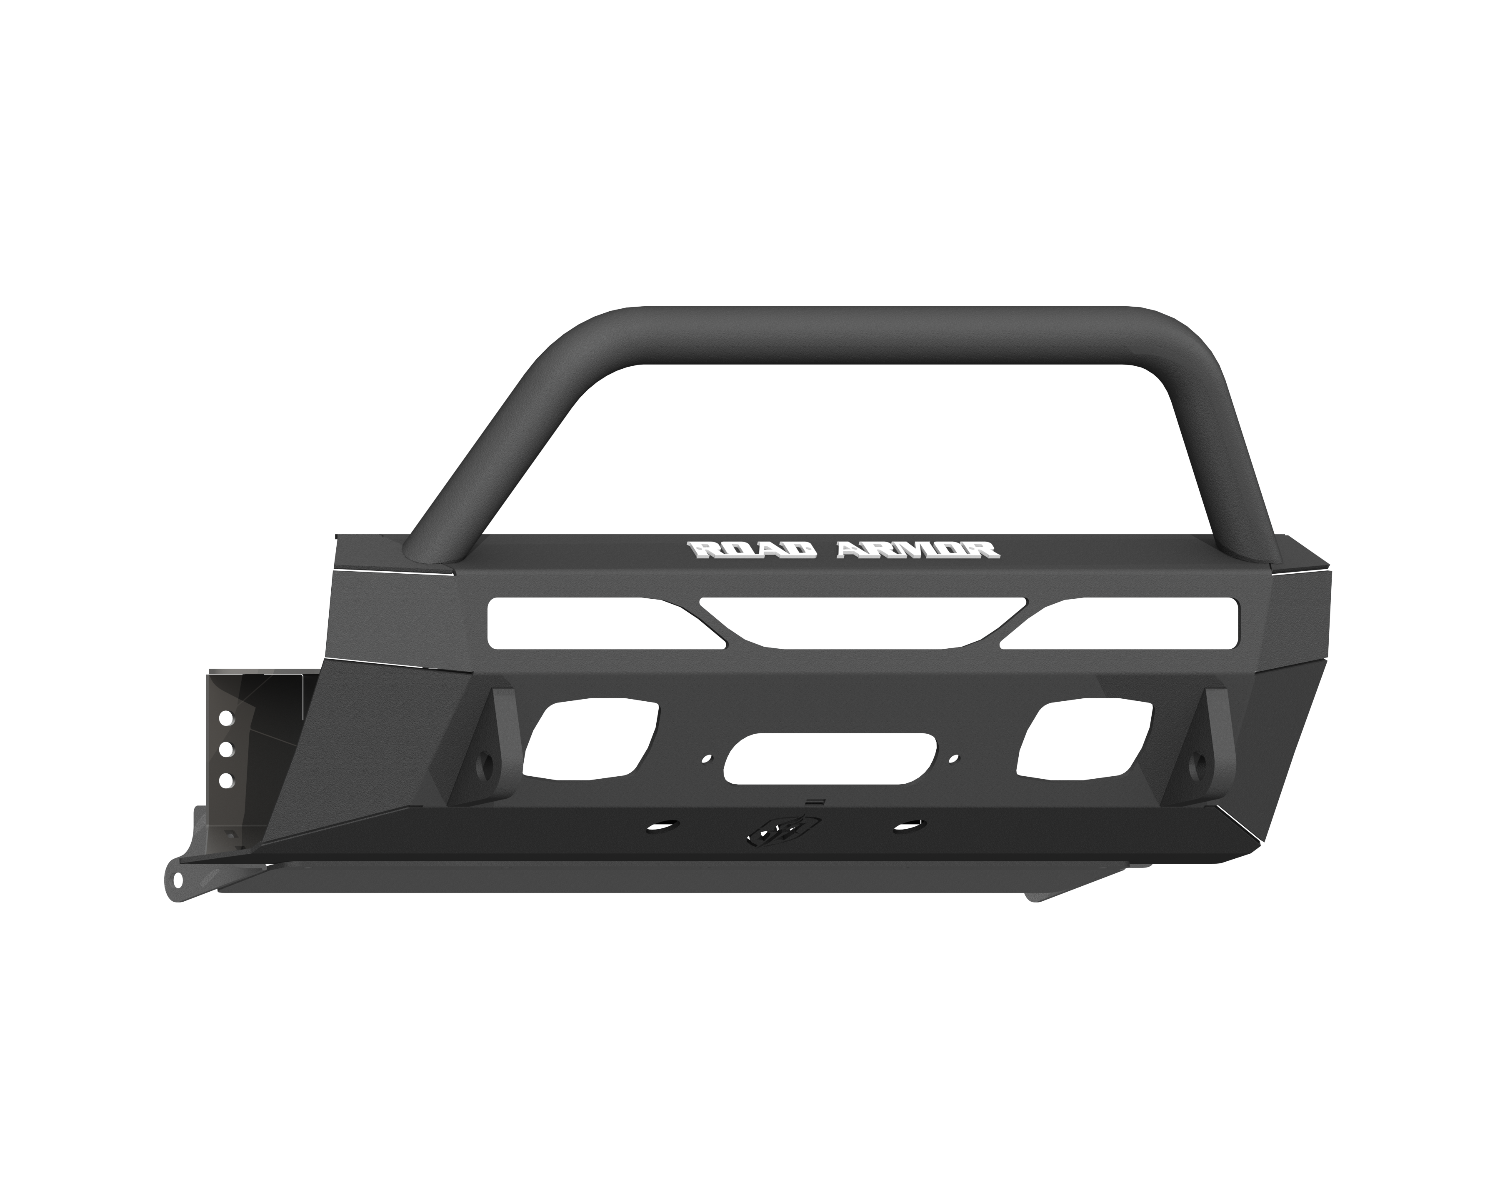 Stealth Front Low Profile Hiden Winch Bumper 2014+